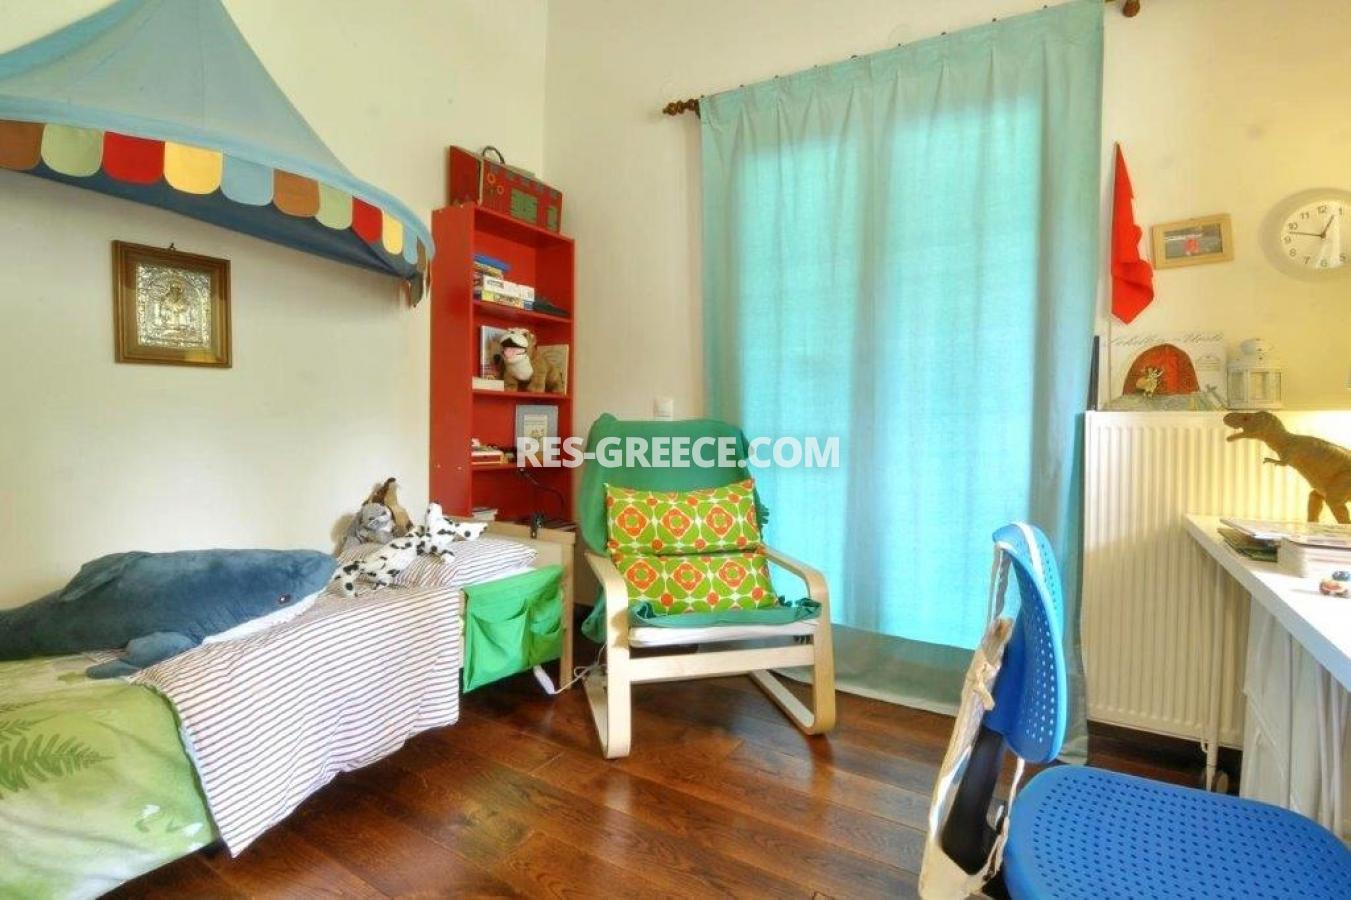 Poulades, Ionian Islands, Greece - Mediterranean bungalow for sale in Corfu - Photo 10